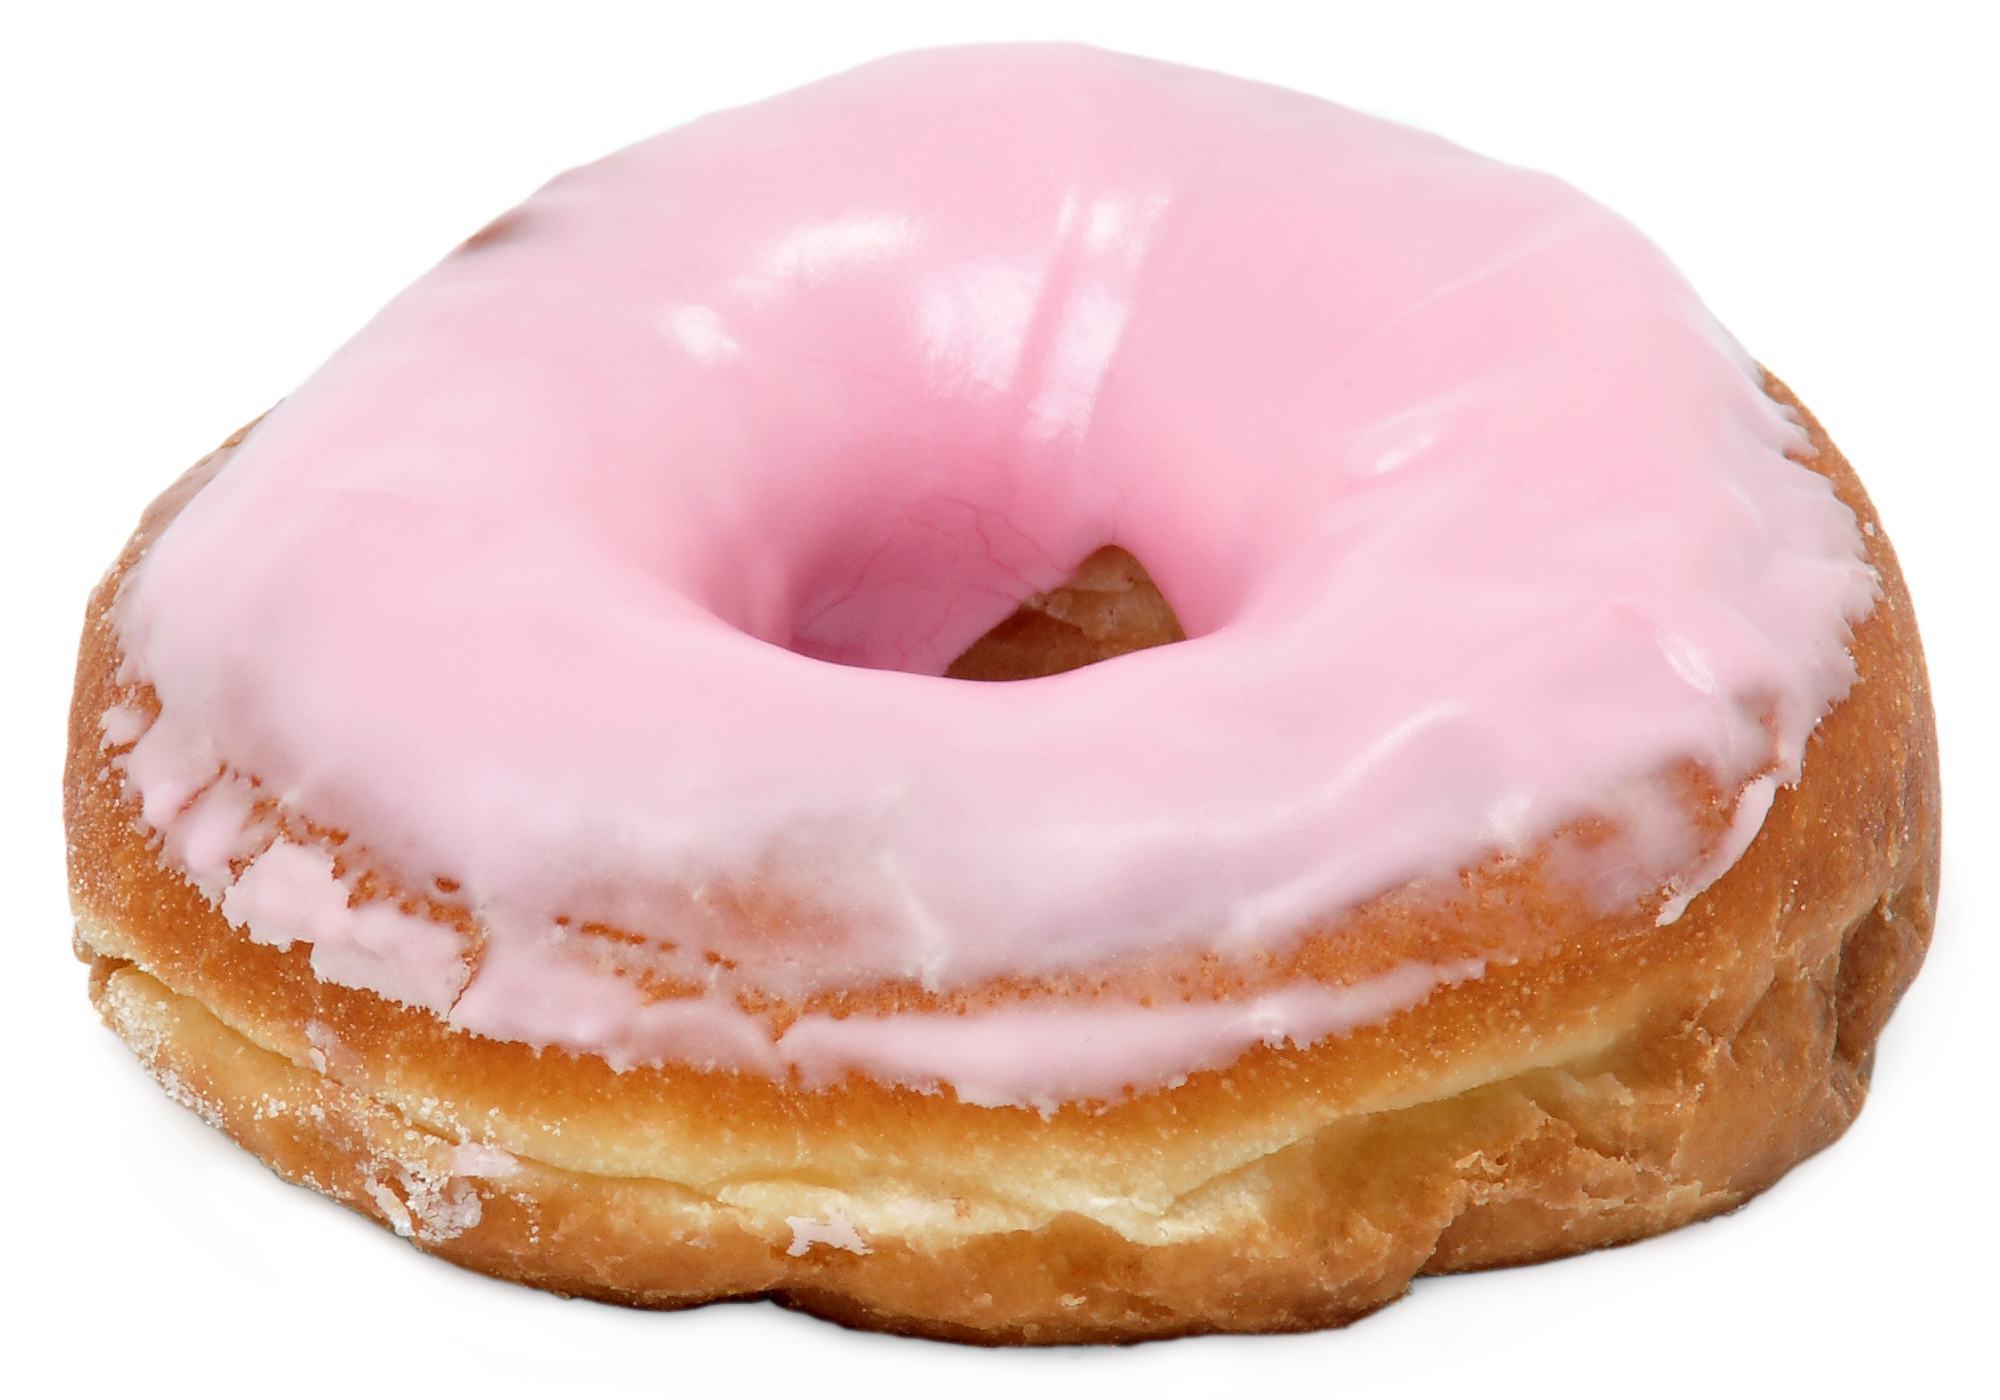 It's National Doughnut Day!